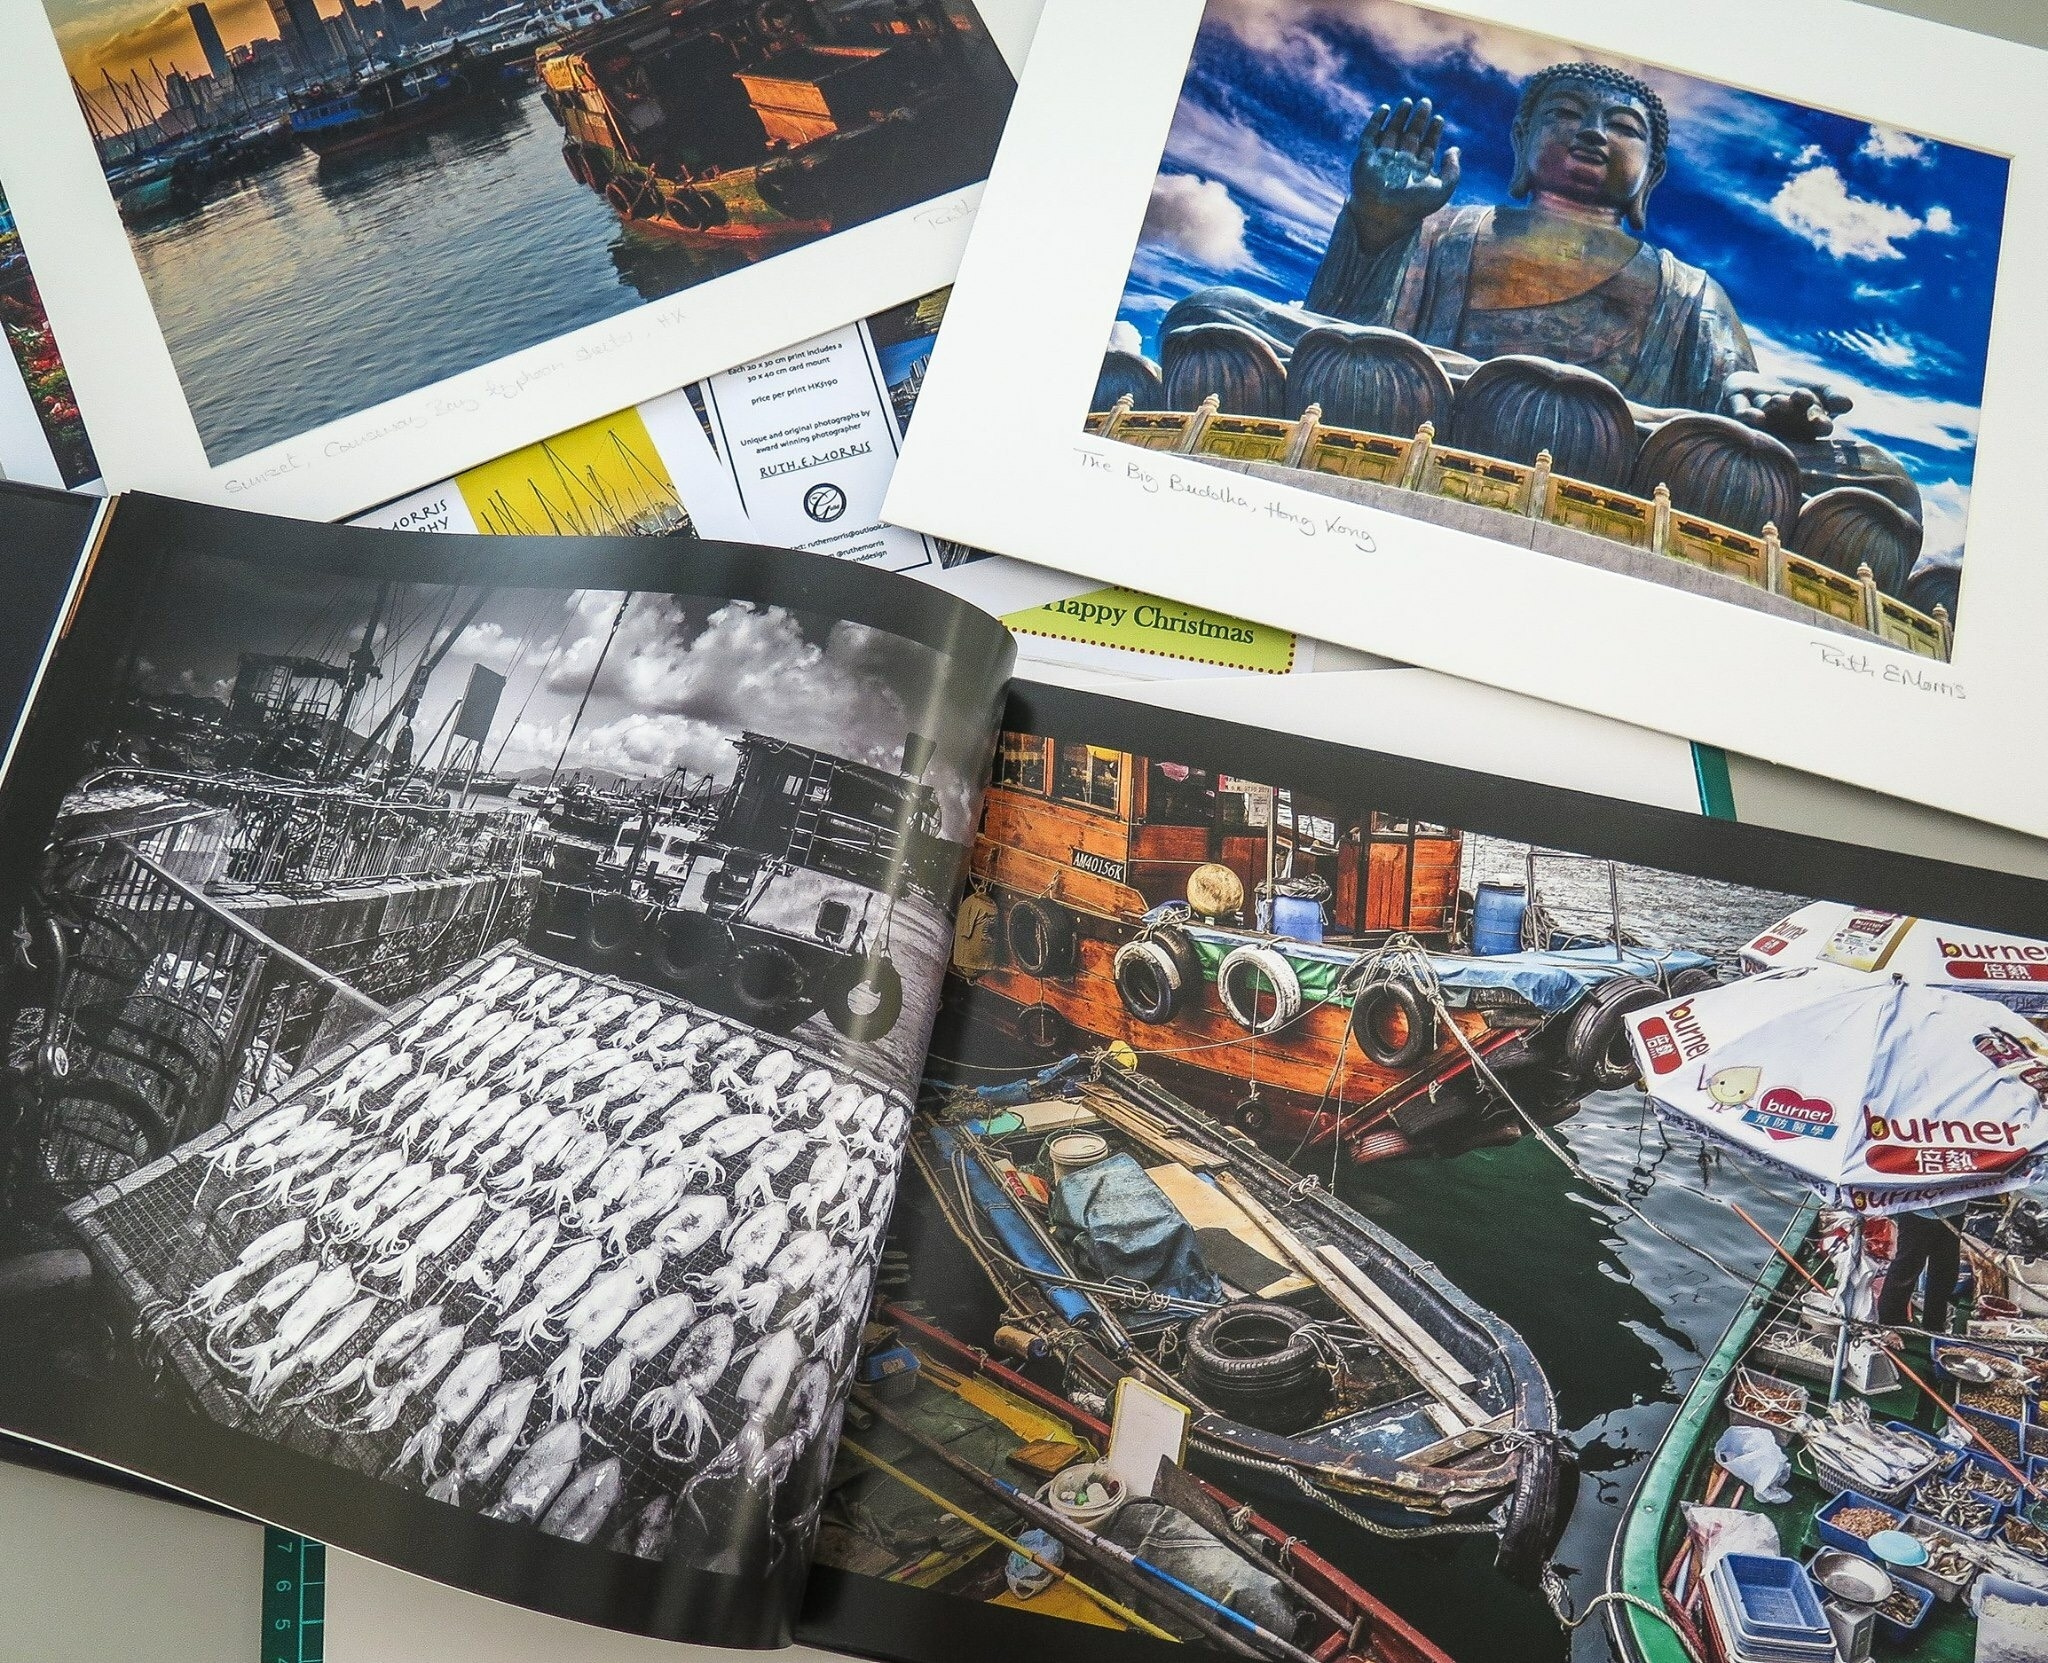 Hong Kong photo book